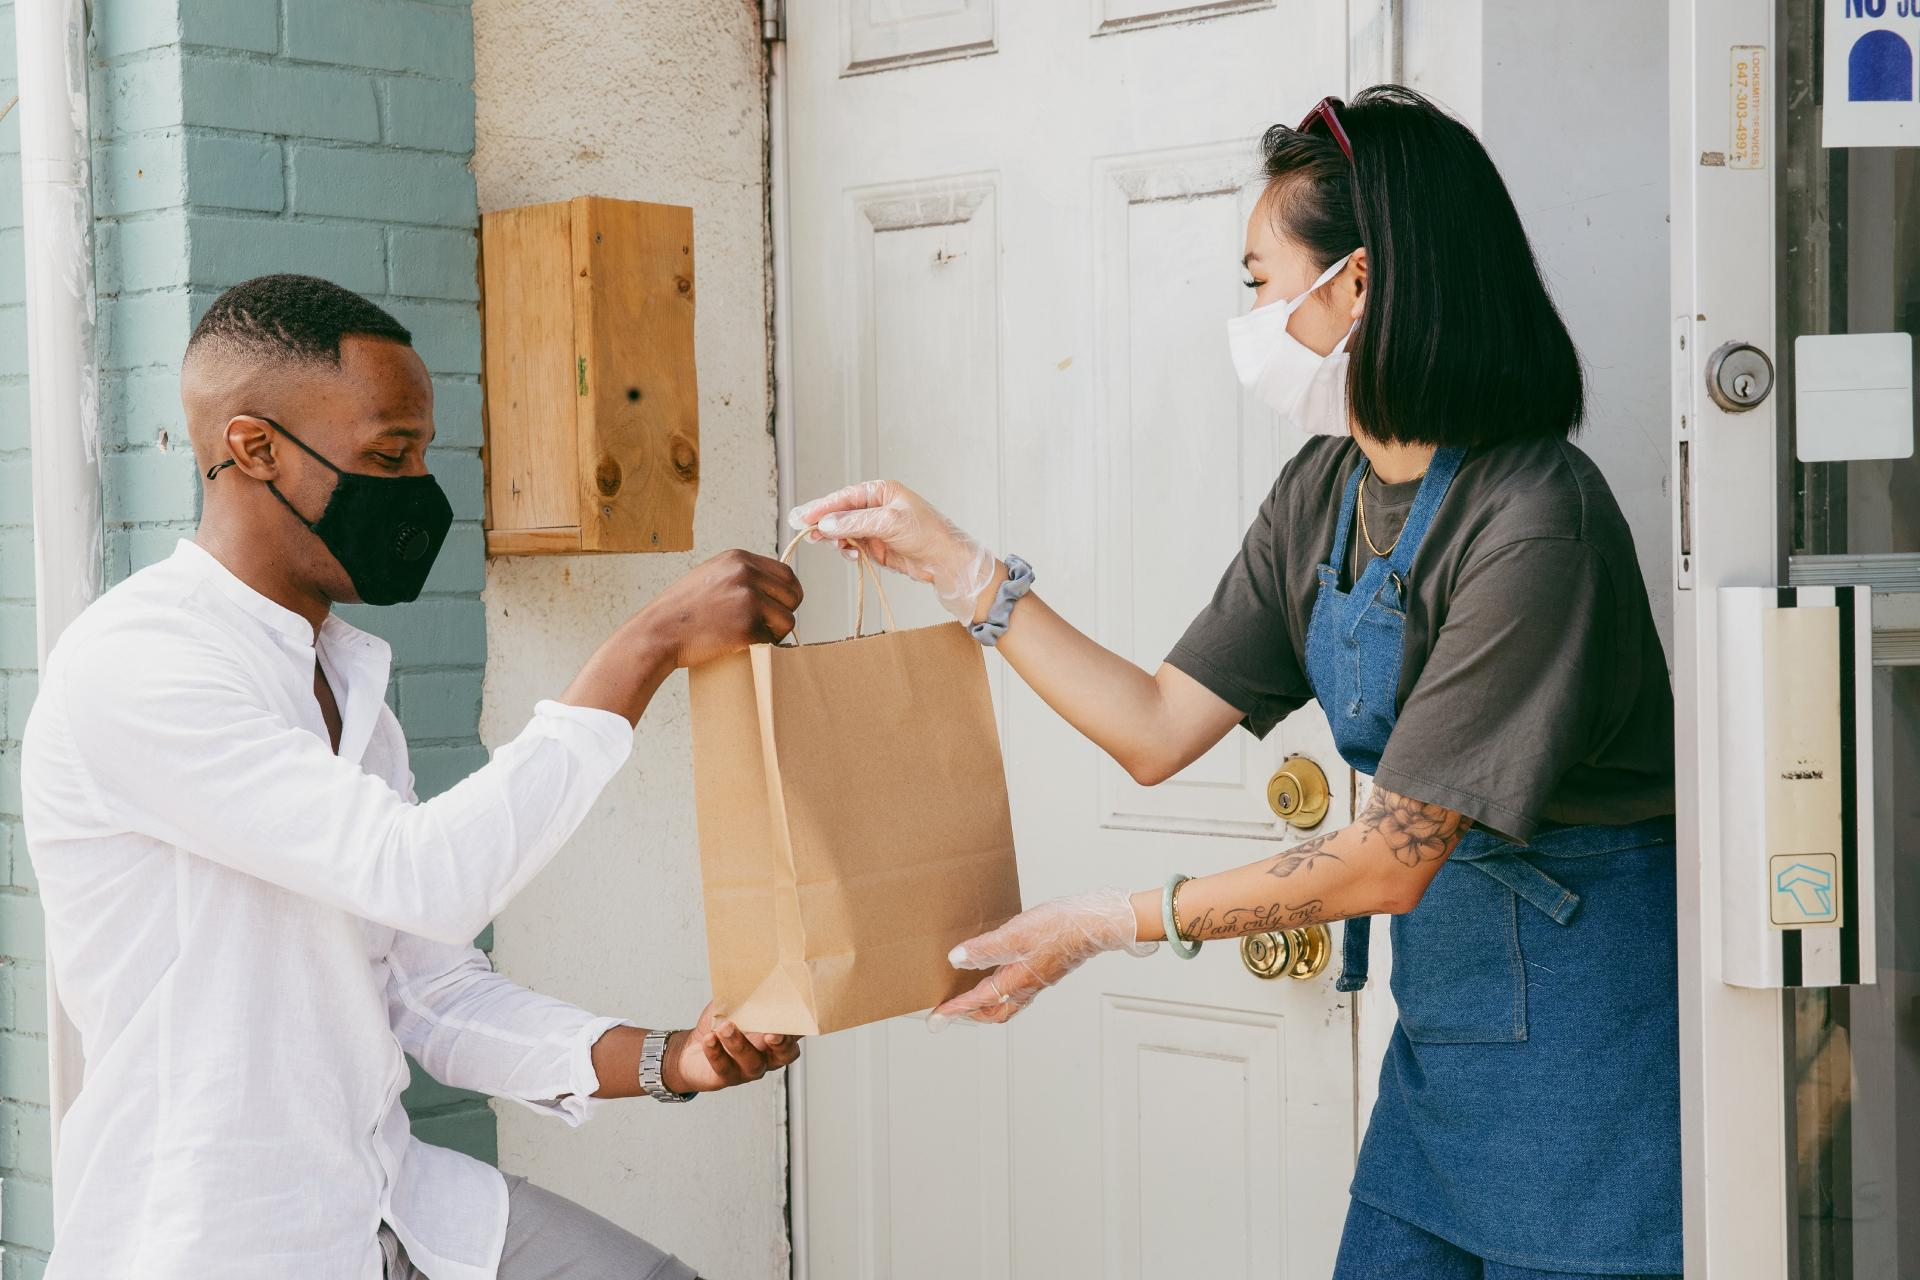 Curbside Pickup & Delivery: Complete Guide